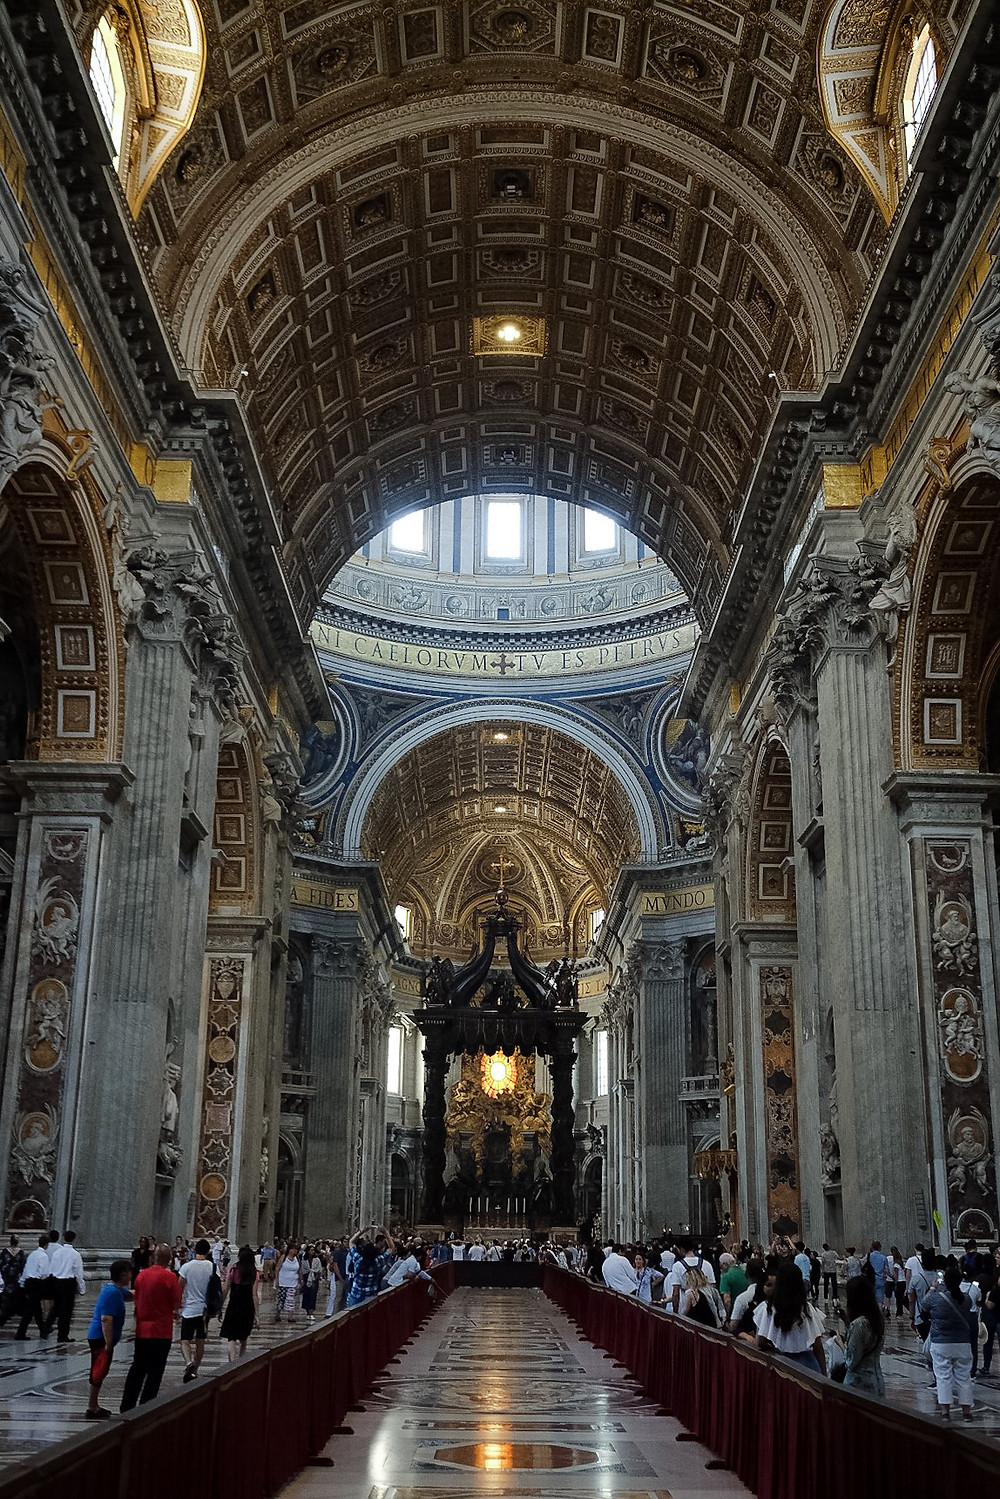 inside Saint Peter's Basilica, long aisle